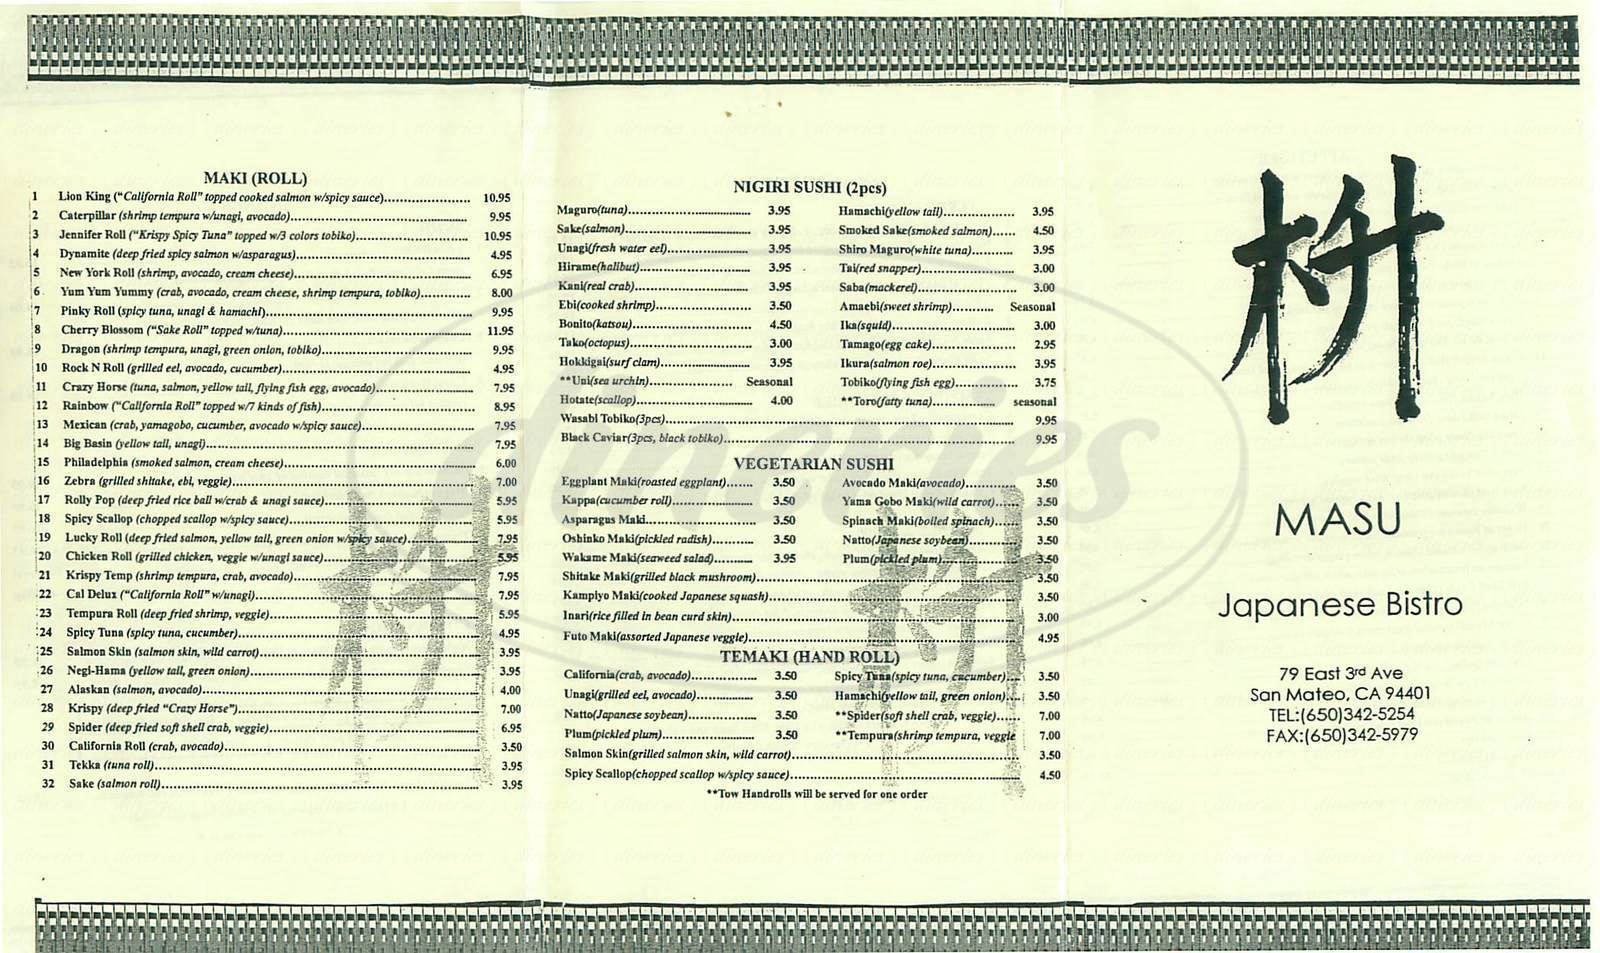 menu for Masu